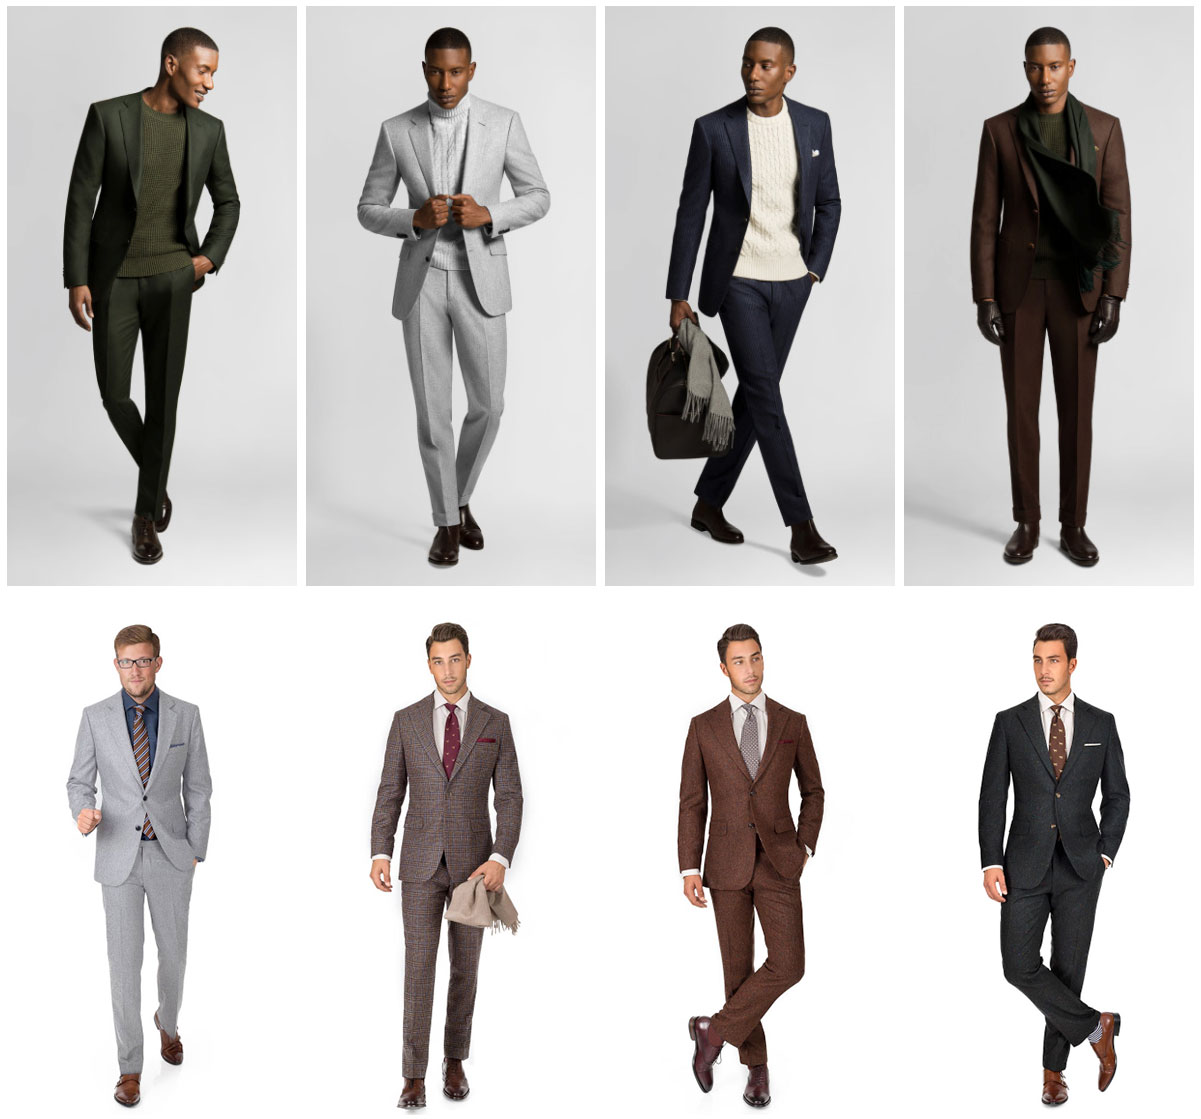 men's winter fashion - mtm winter suits